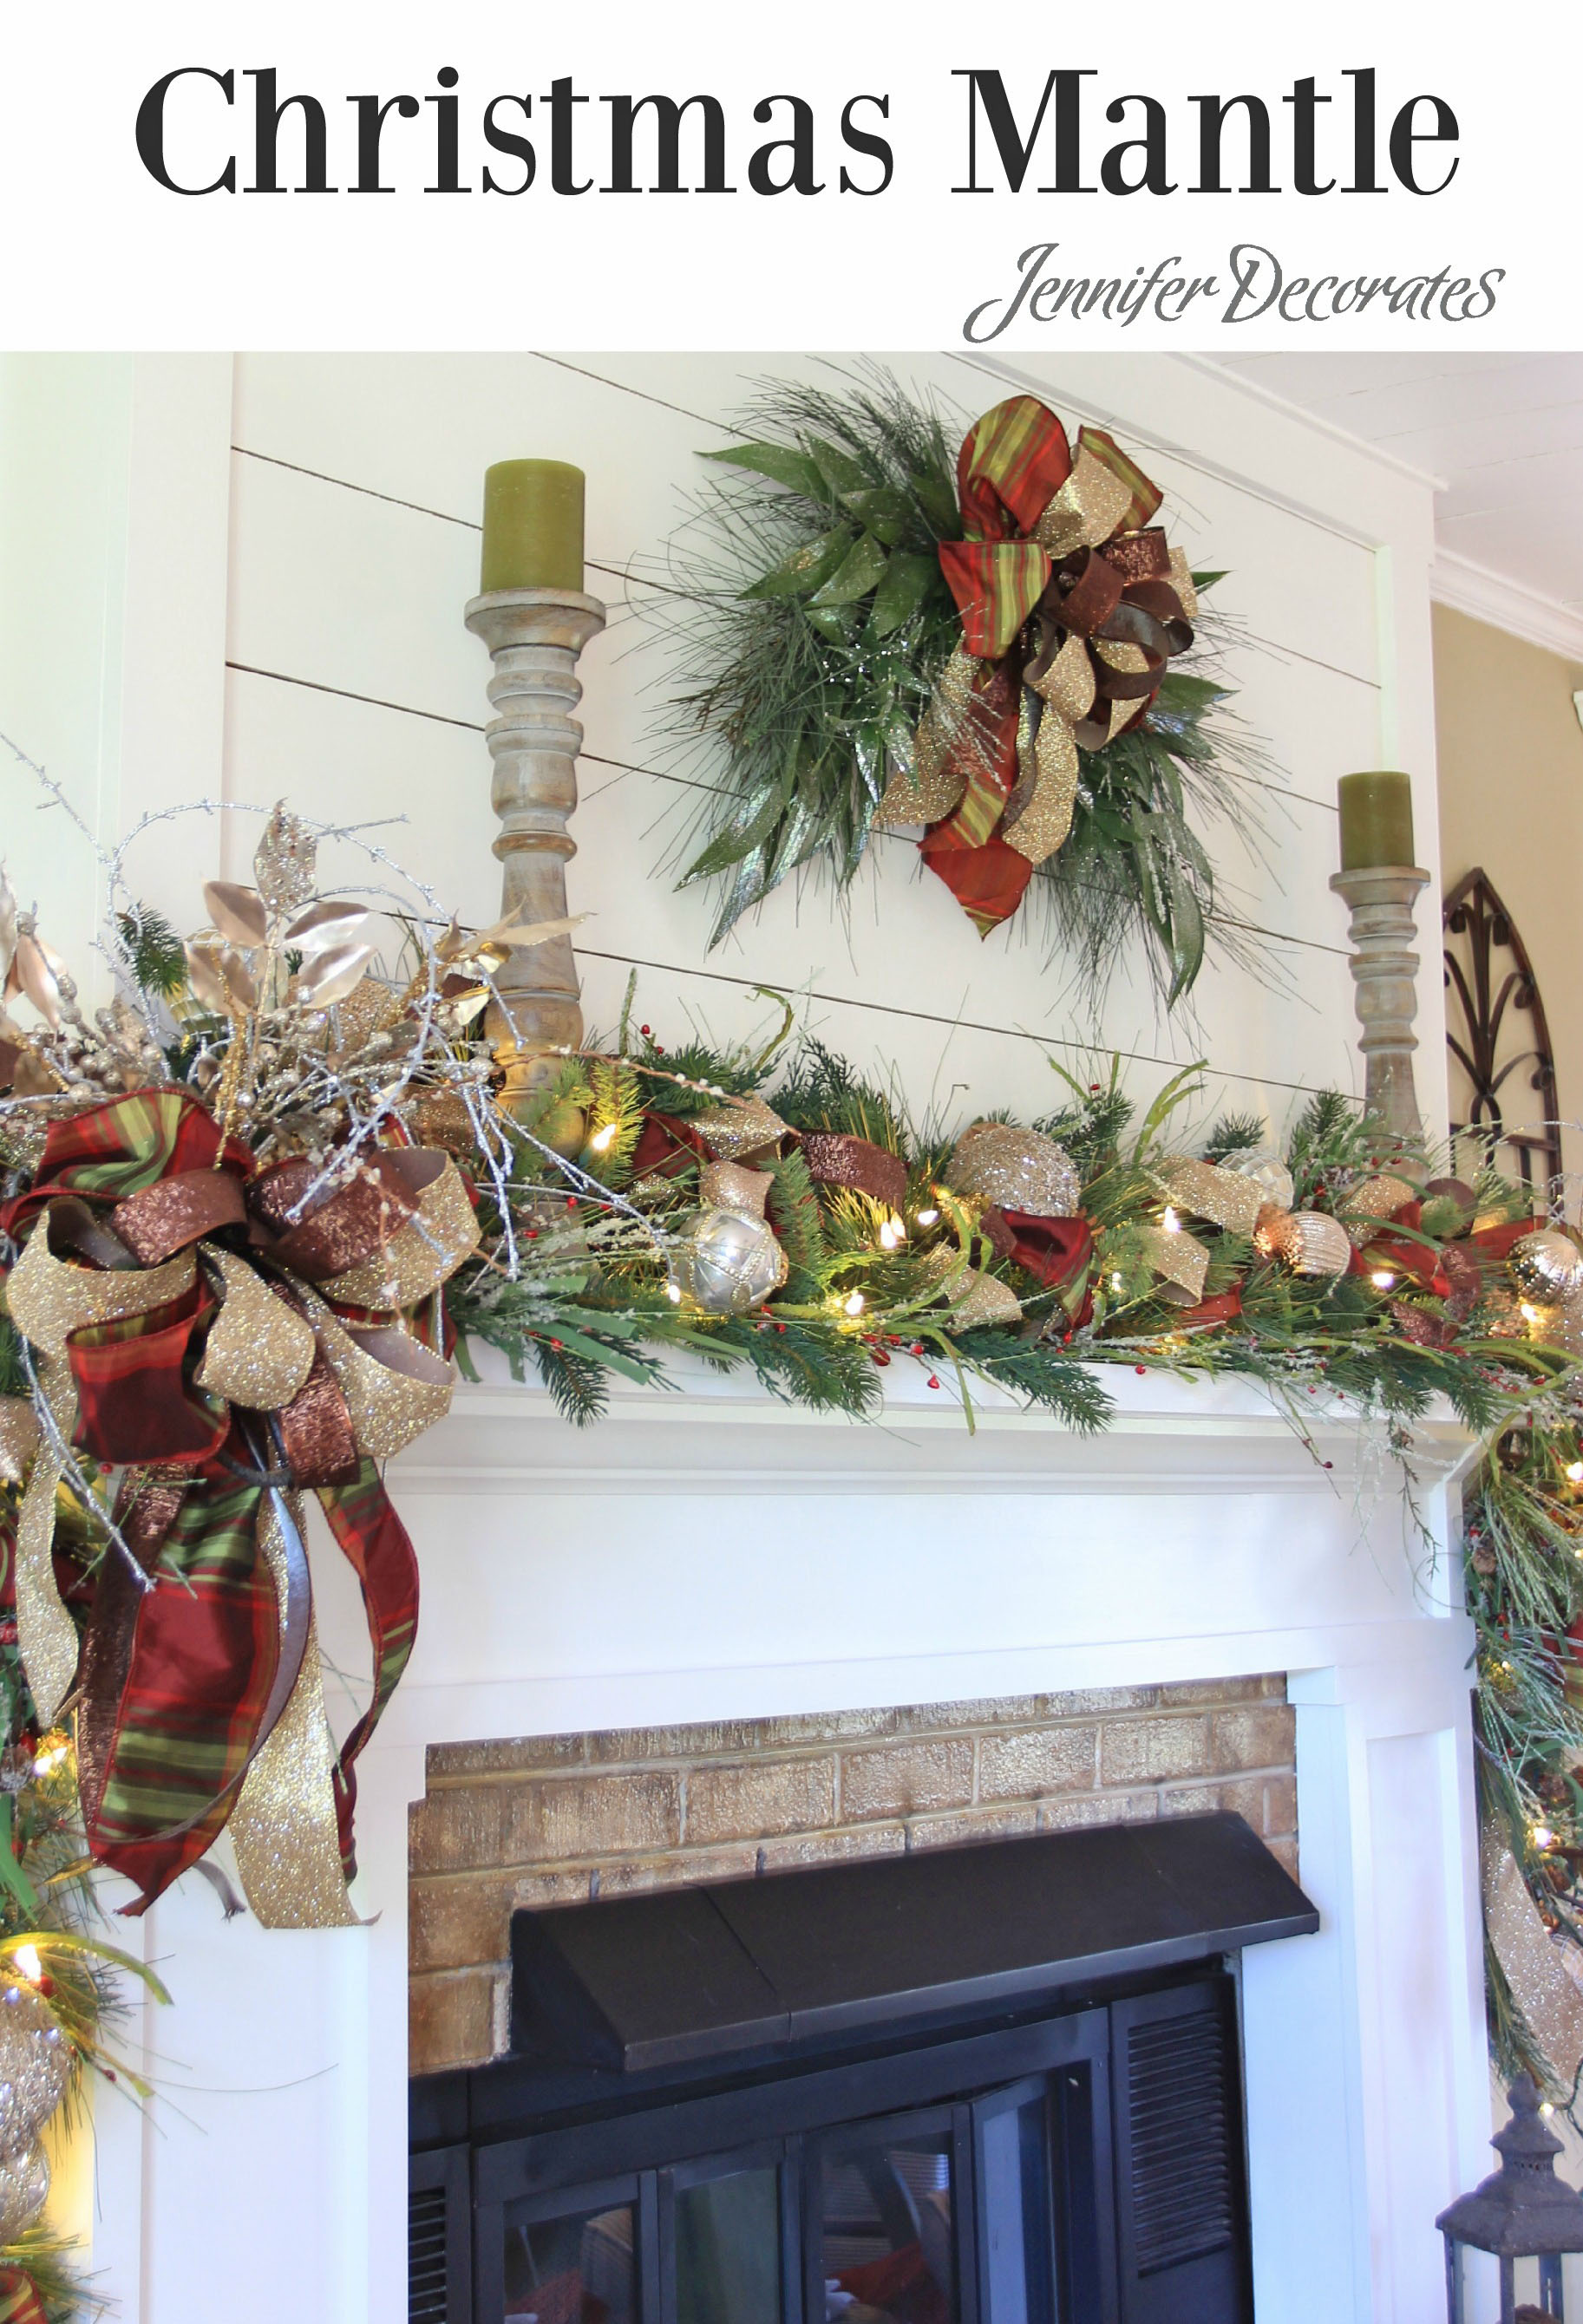 How to decorate a mantle for Christmas from Jennifer Decorates.com